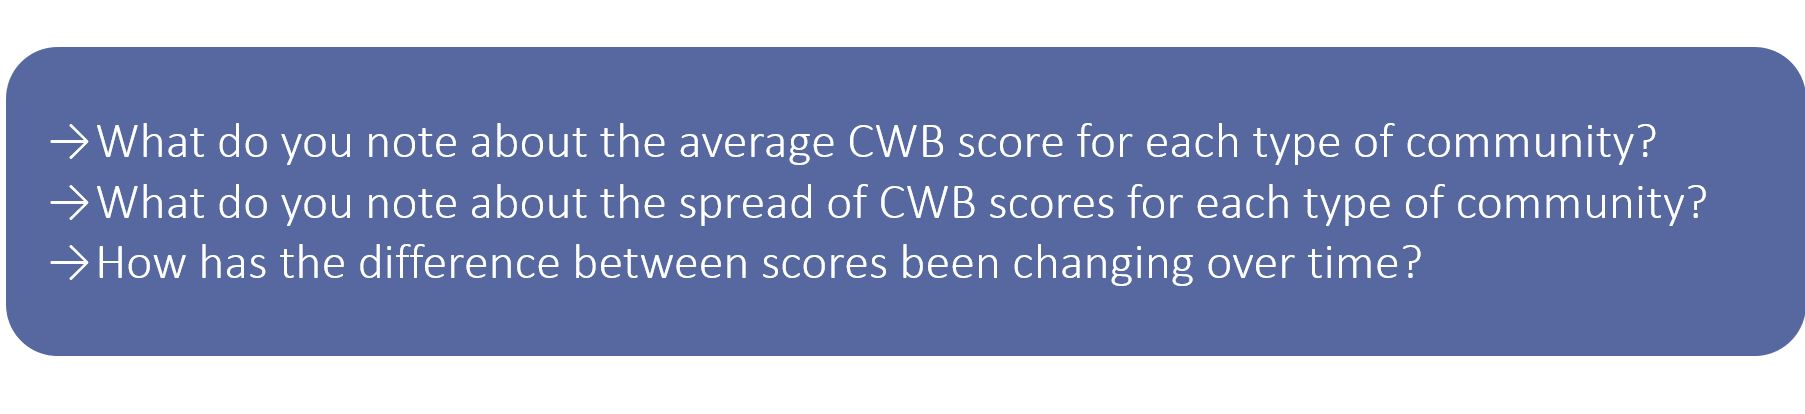 What do you note about the average CWB score for each type of community? What do you note about the spread of CWB scores for each type of community? How has the difference between Indigenous and non-Indigenous community scores been changing over time?